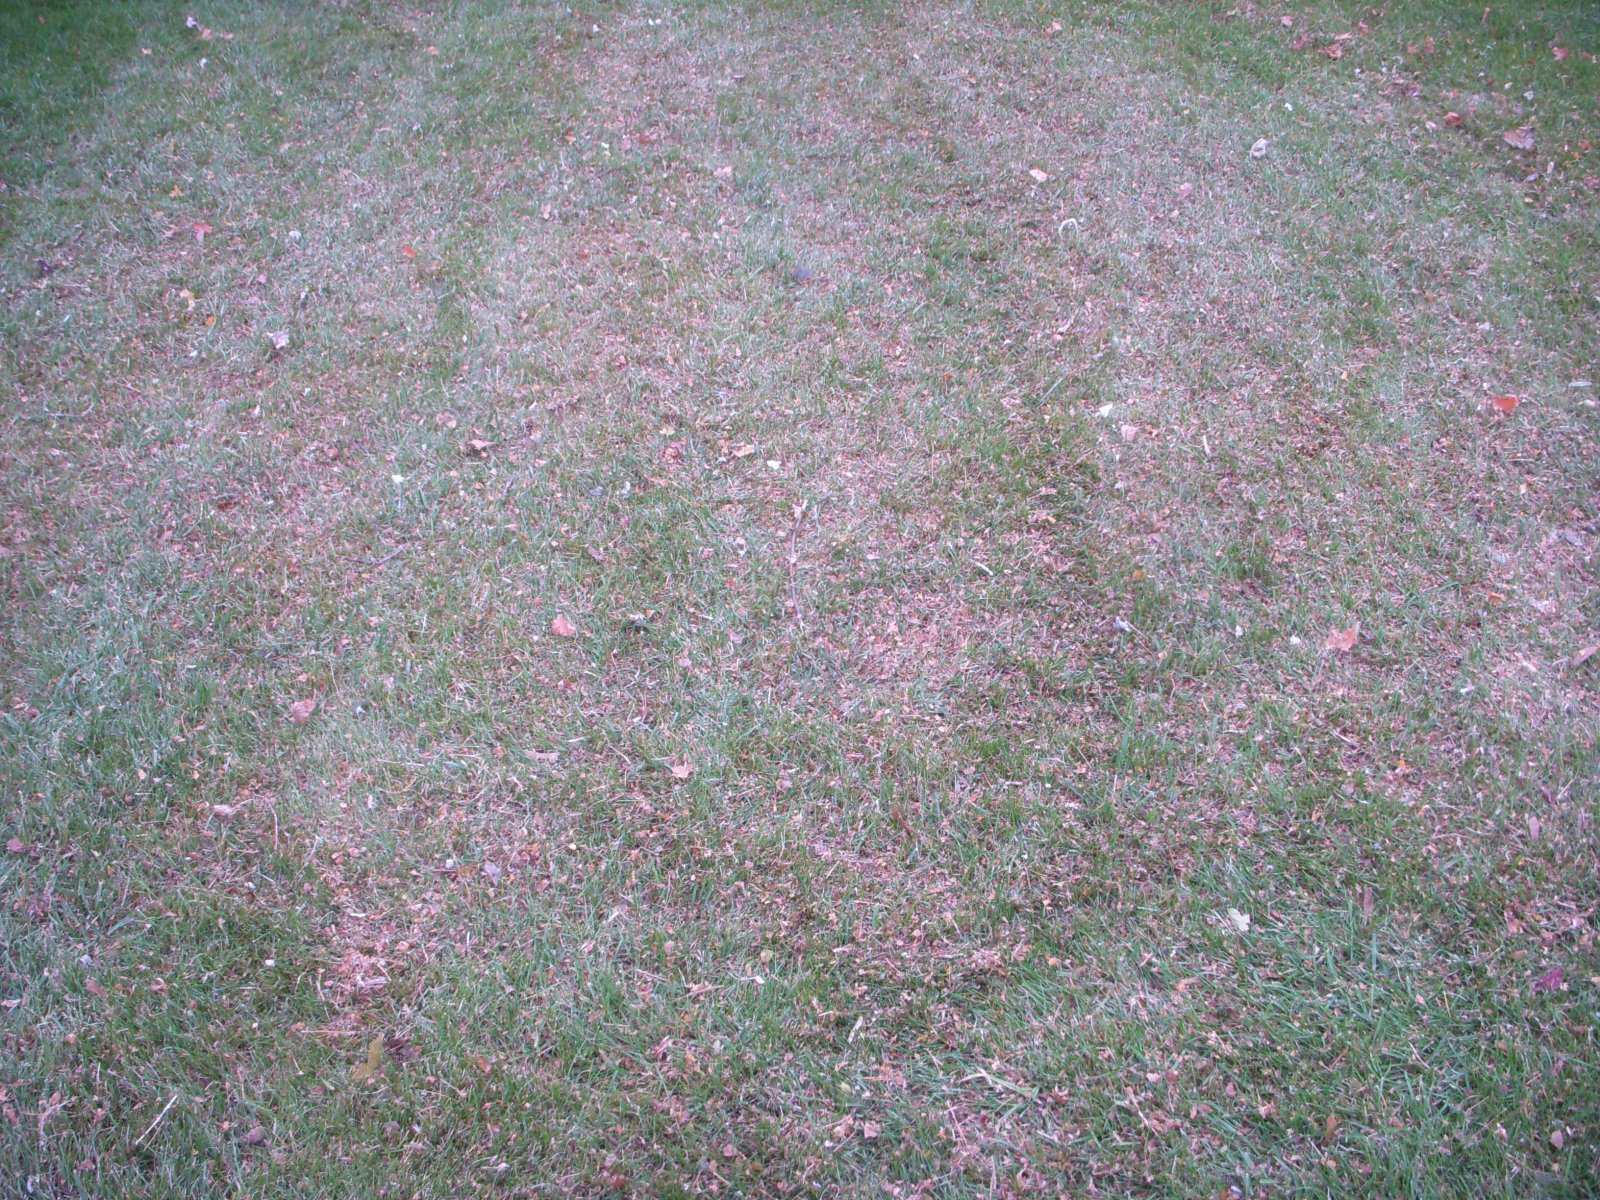 mulch shred leaves on new young grass lawn (4).JPG